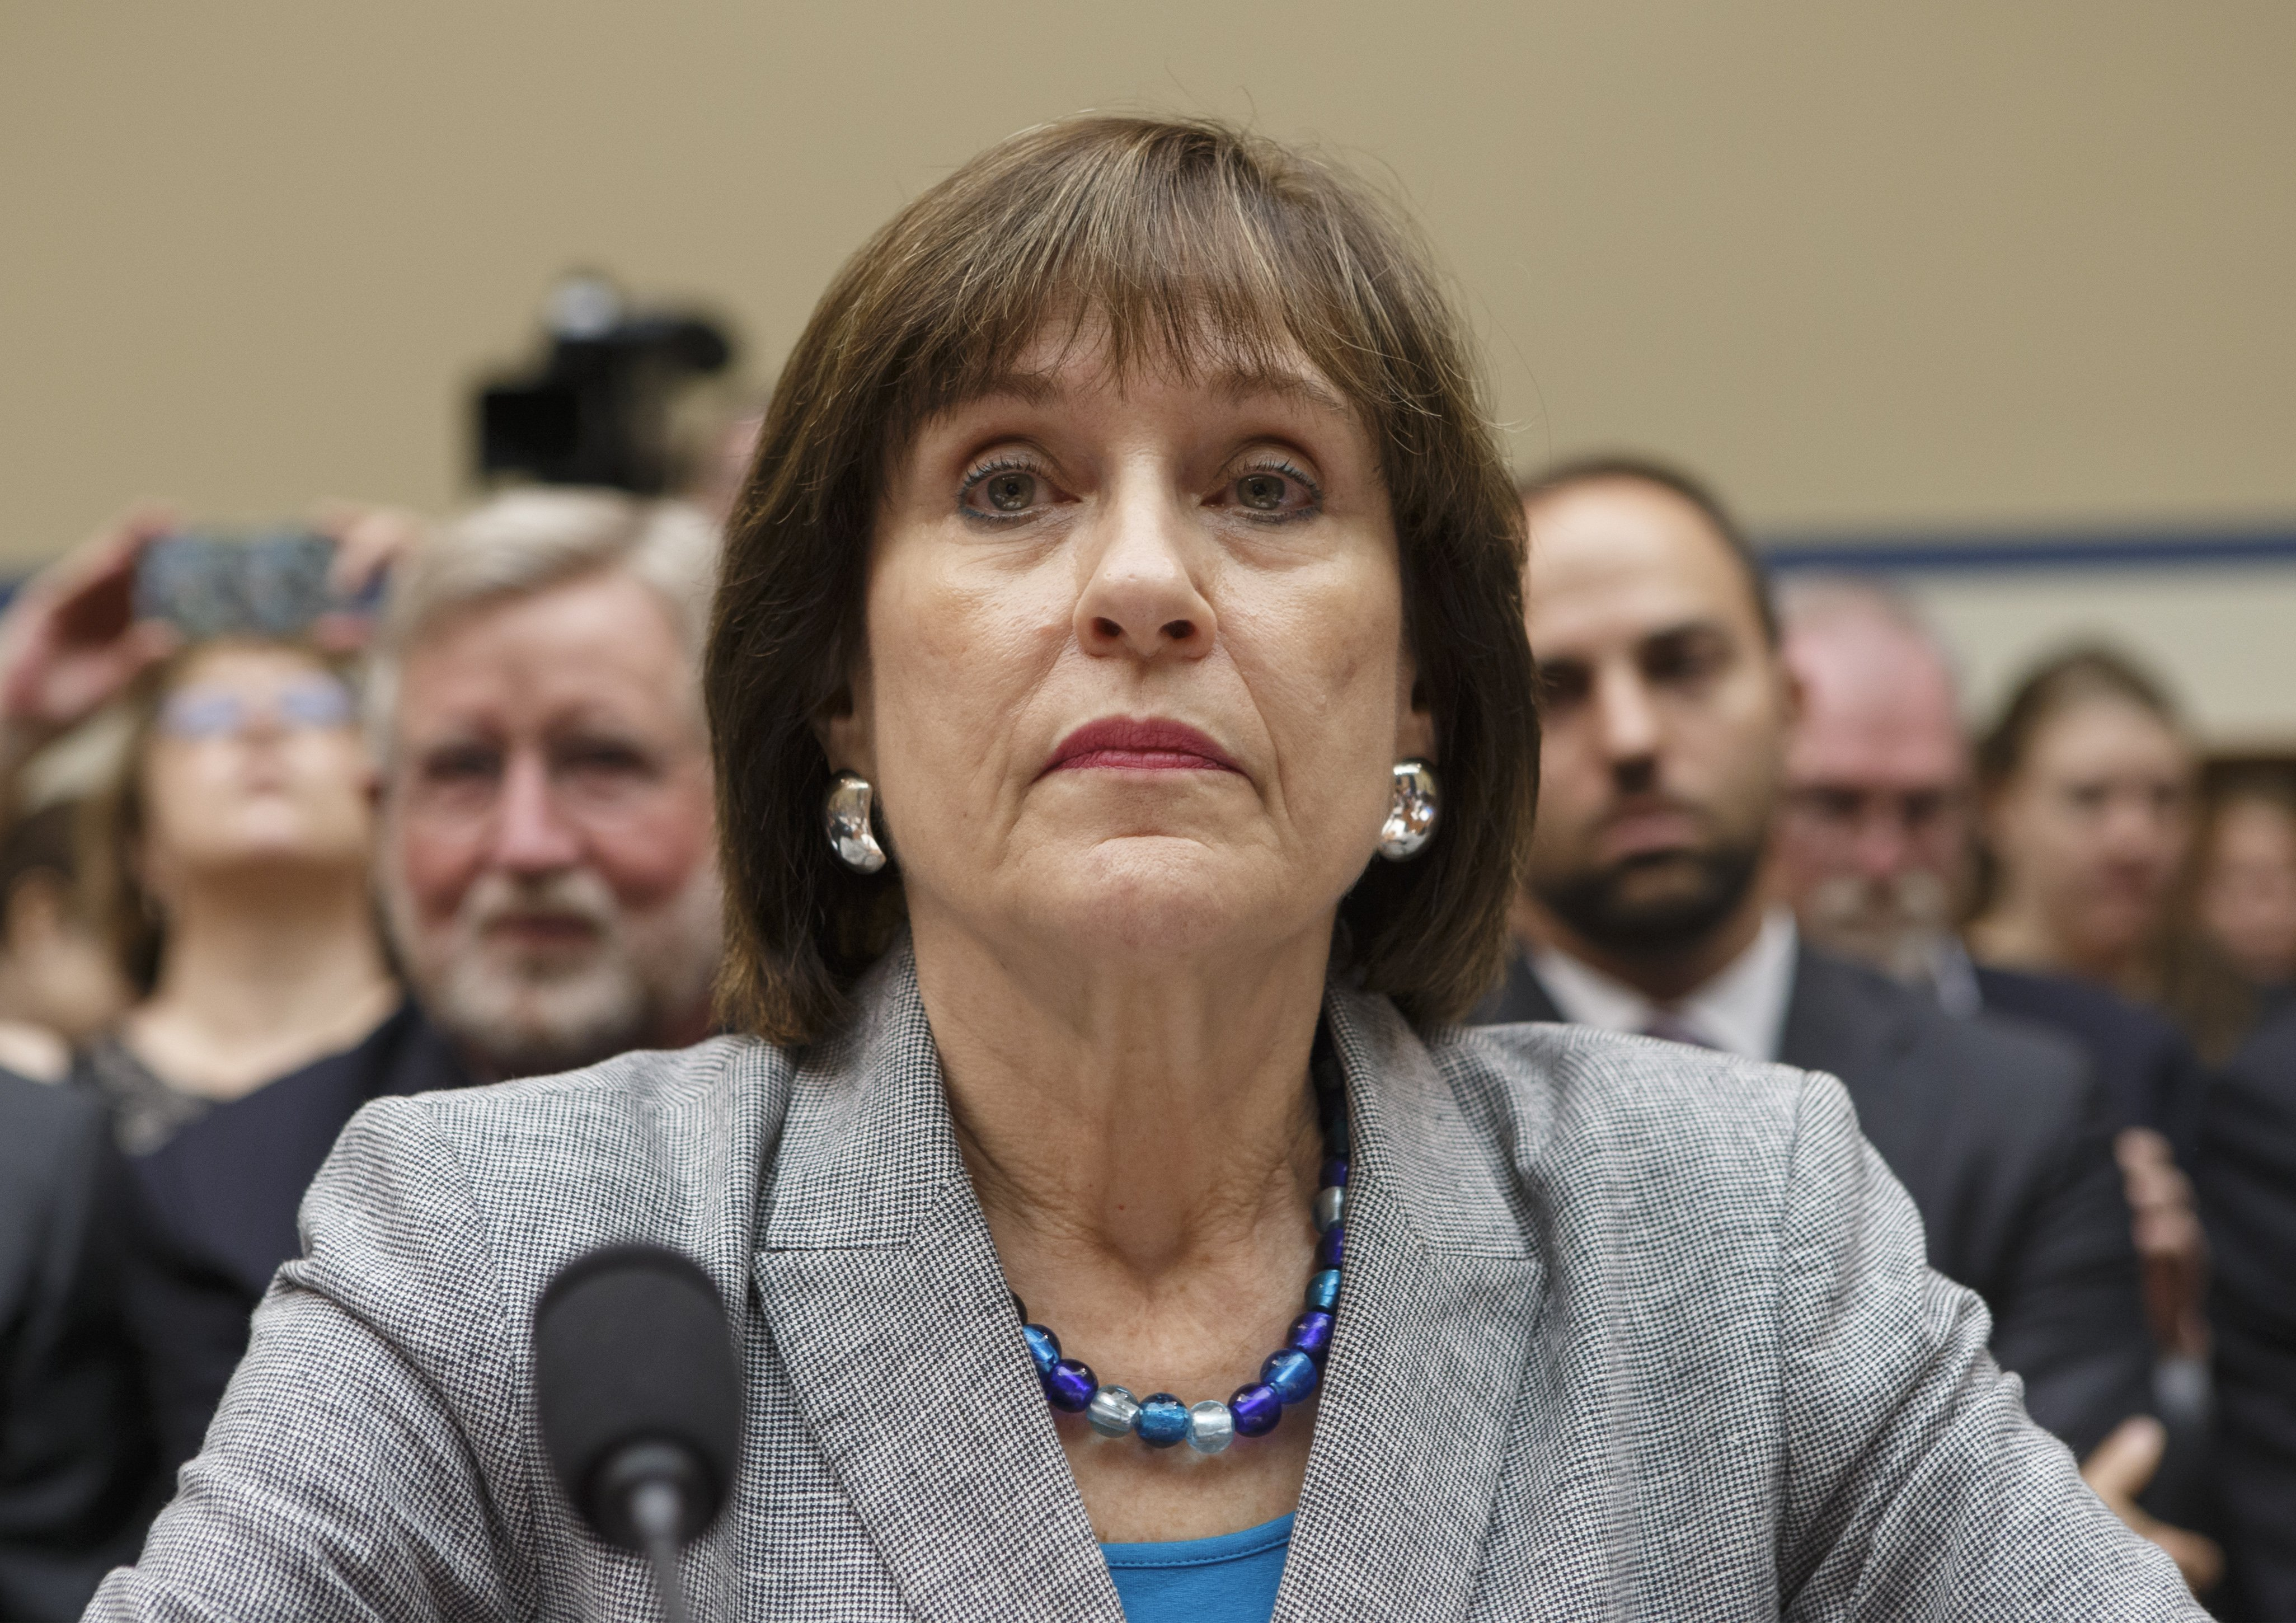 Internal Revenue Service official Lois Lerner refuses to answer questions as the House Oversight Committee holds a hearing to investigate the extra scrutiny the IRS gave Tea Party and other conservative groups that applied for tax-exempt status, on Capitol Hill in Washington, D.C., on May 22, 2013.